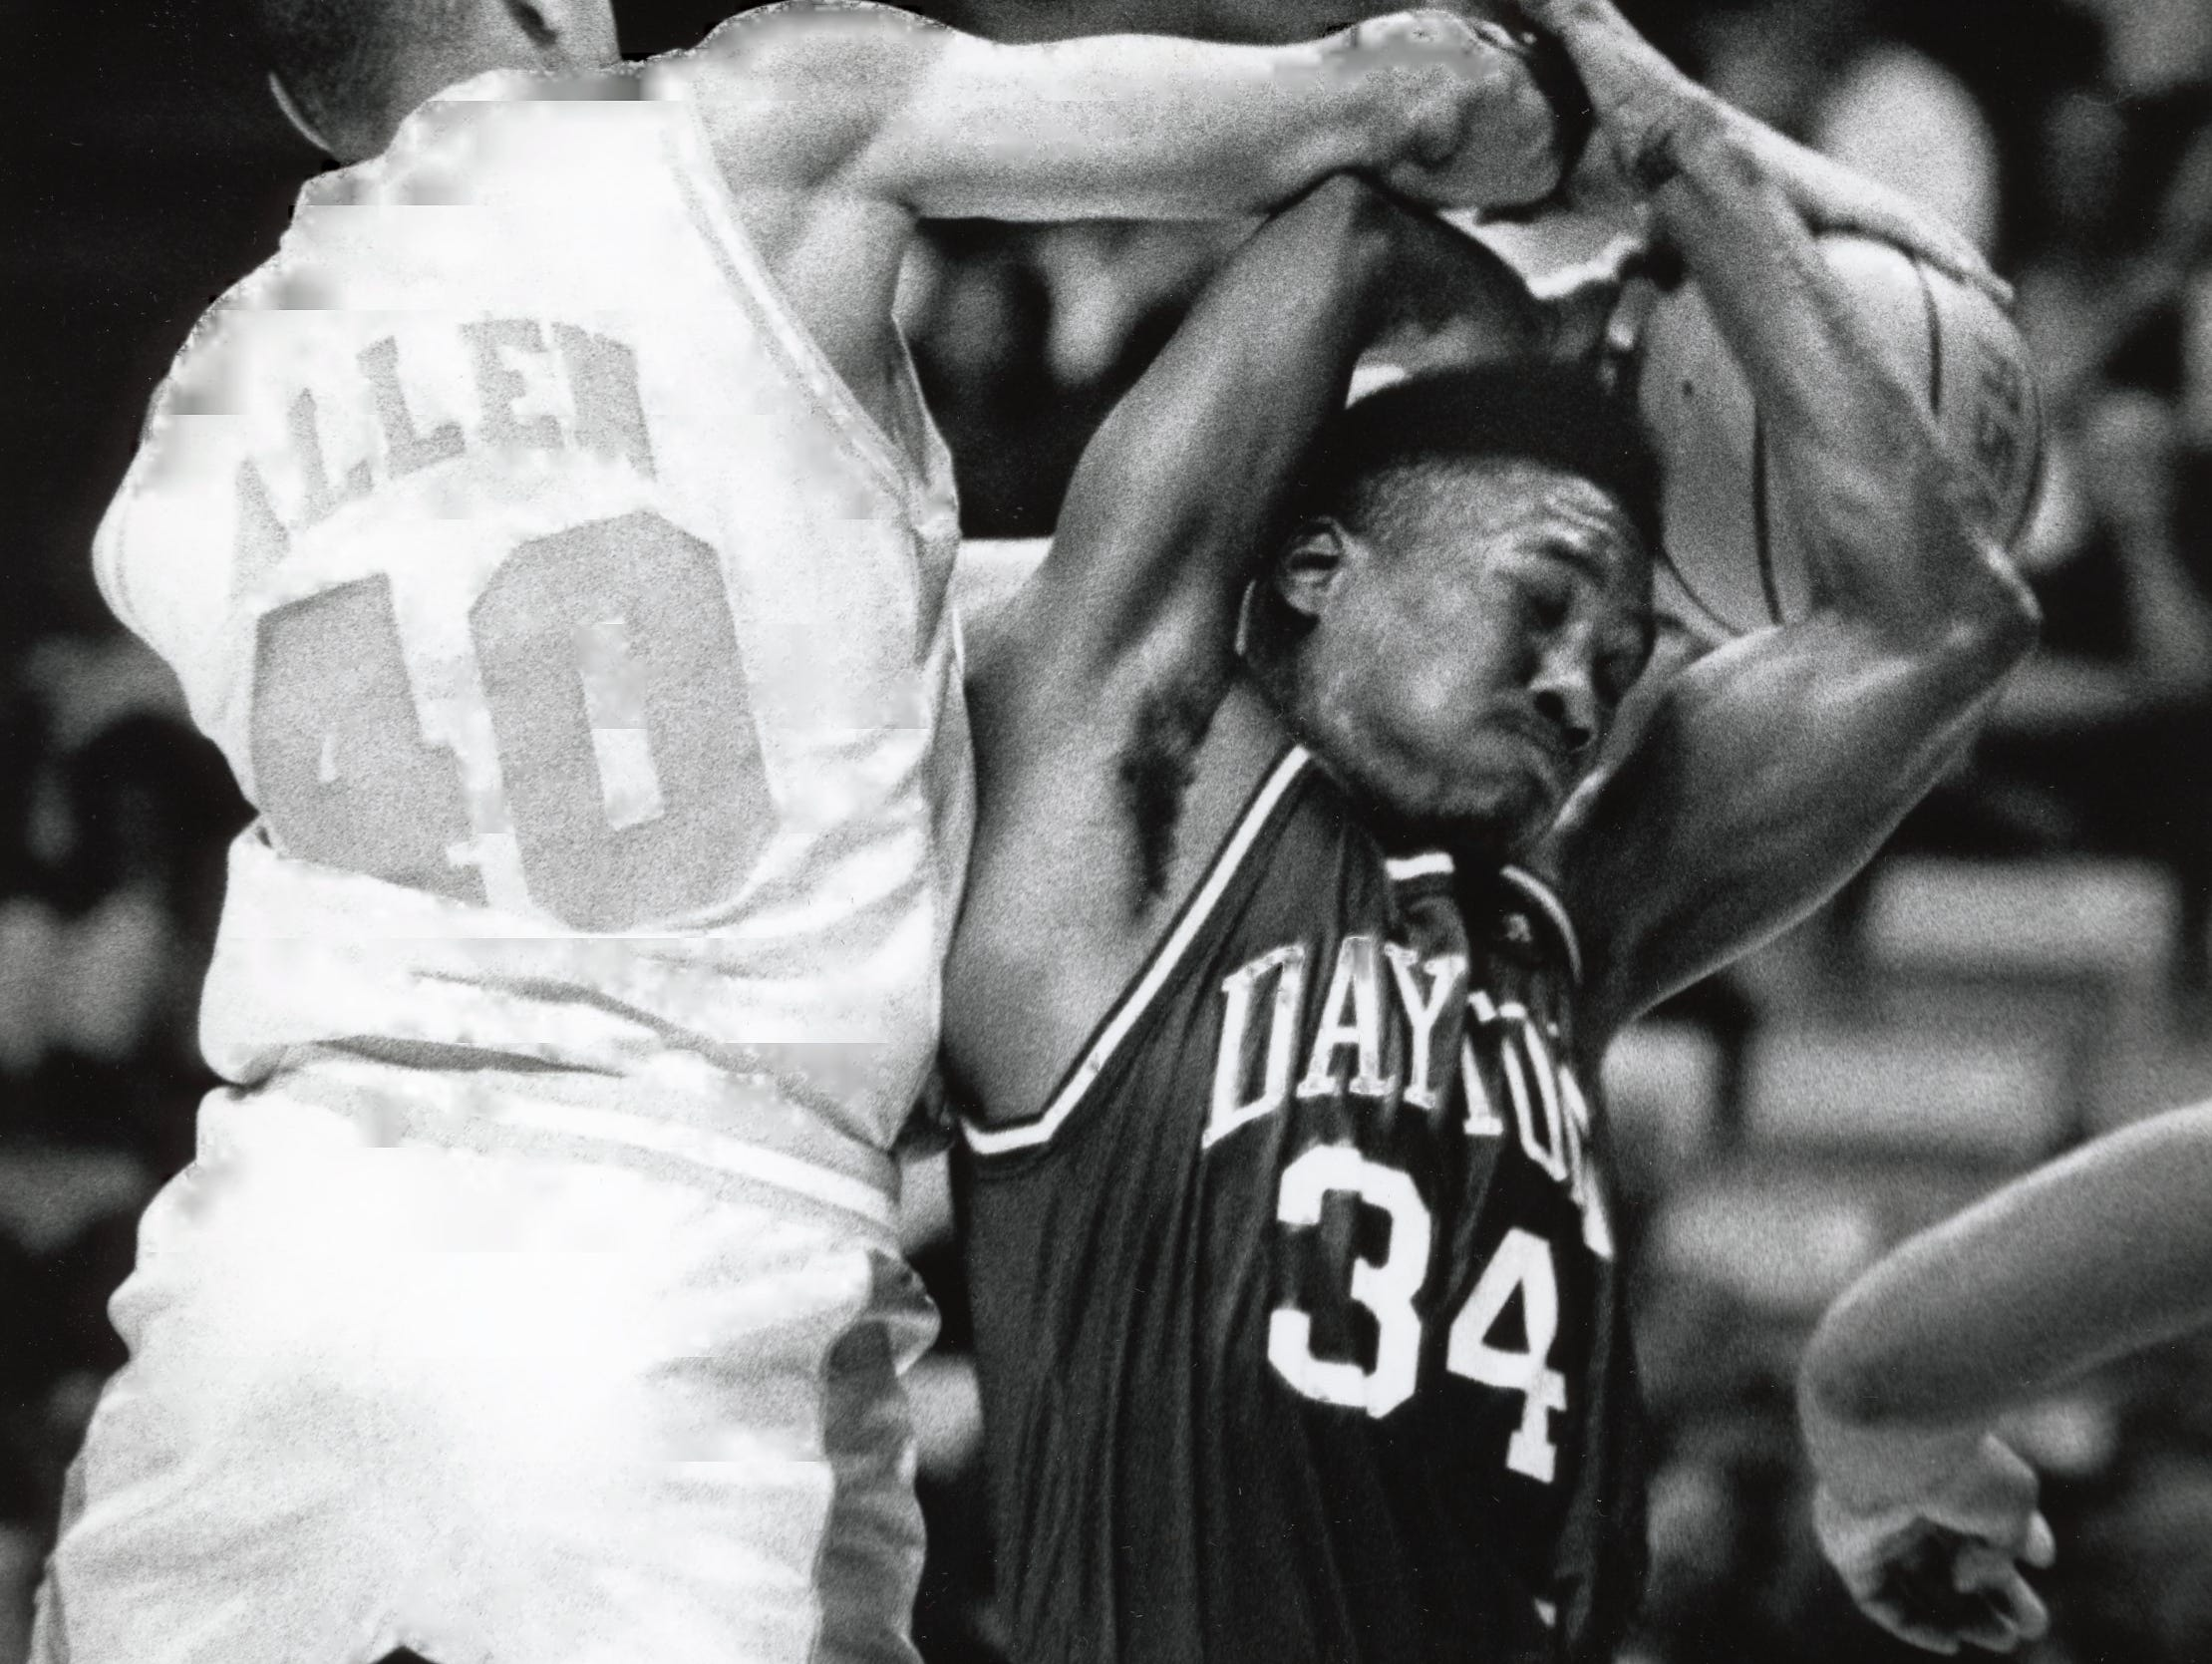 UT's Corey Allen, left, goes over the top of Dayton's Sean Scrutchins to get a hold of the rebound in February 1992.